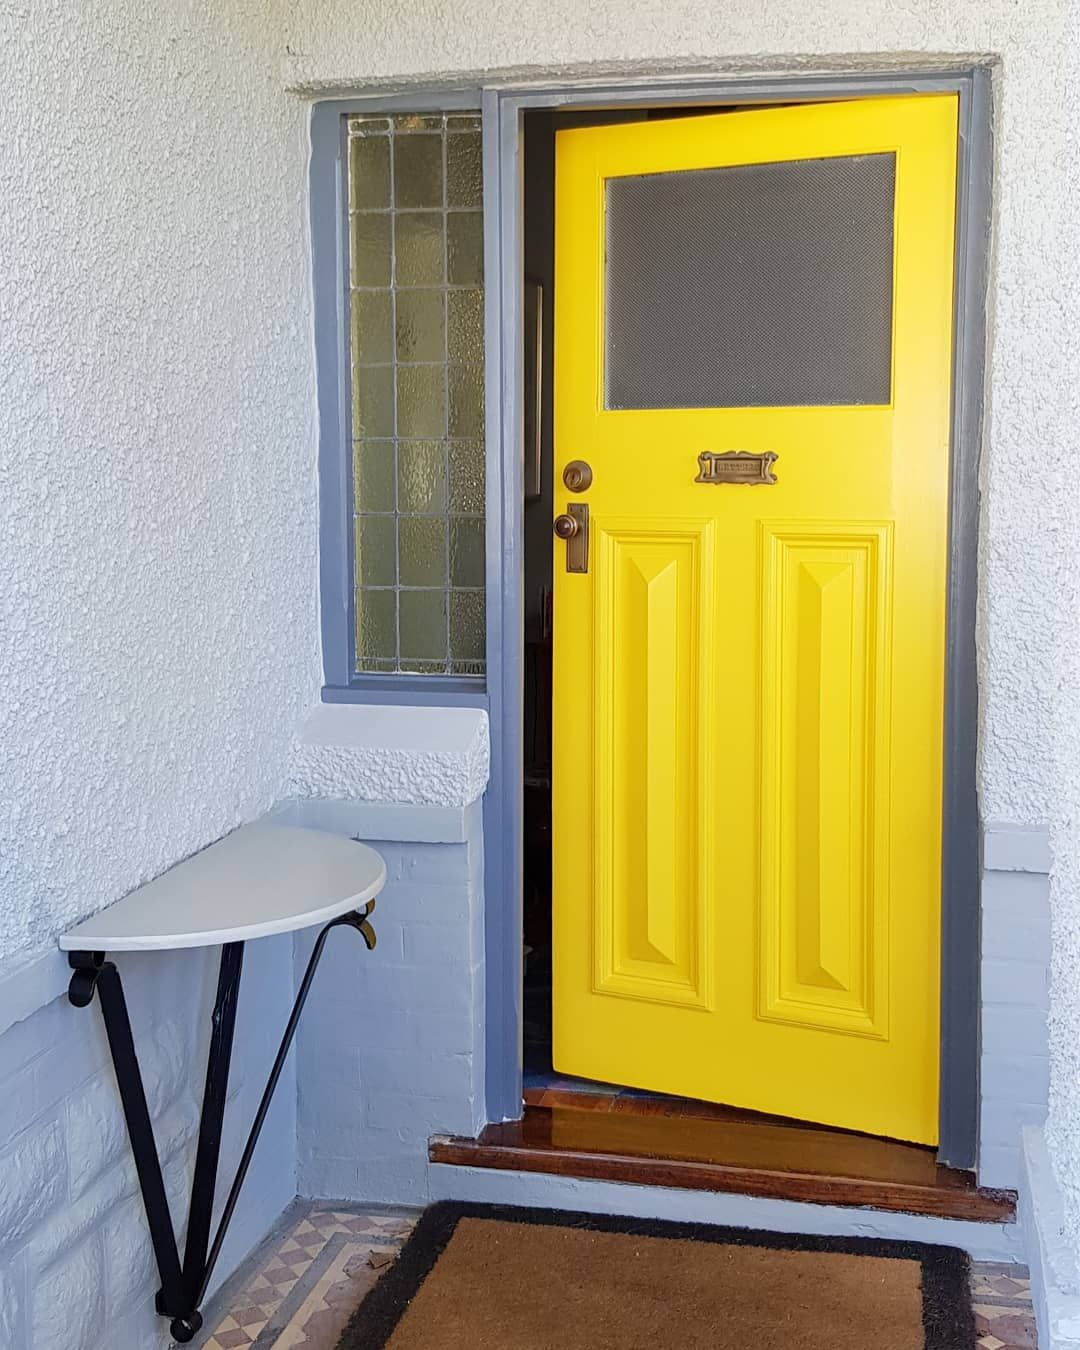 Lemons Daffodils Limoncello Bananas And Big Bird Are All Things Yellow And Now This Door Is Also Akp Paintingandde Decorative Painting Front Door Home Decor